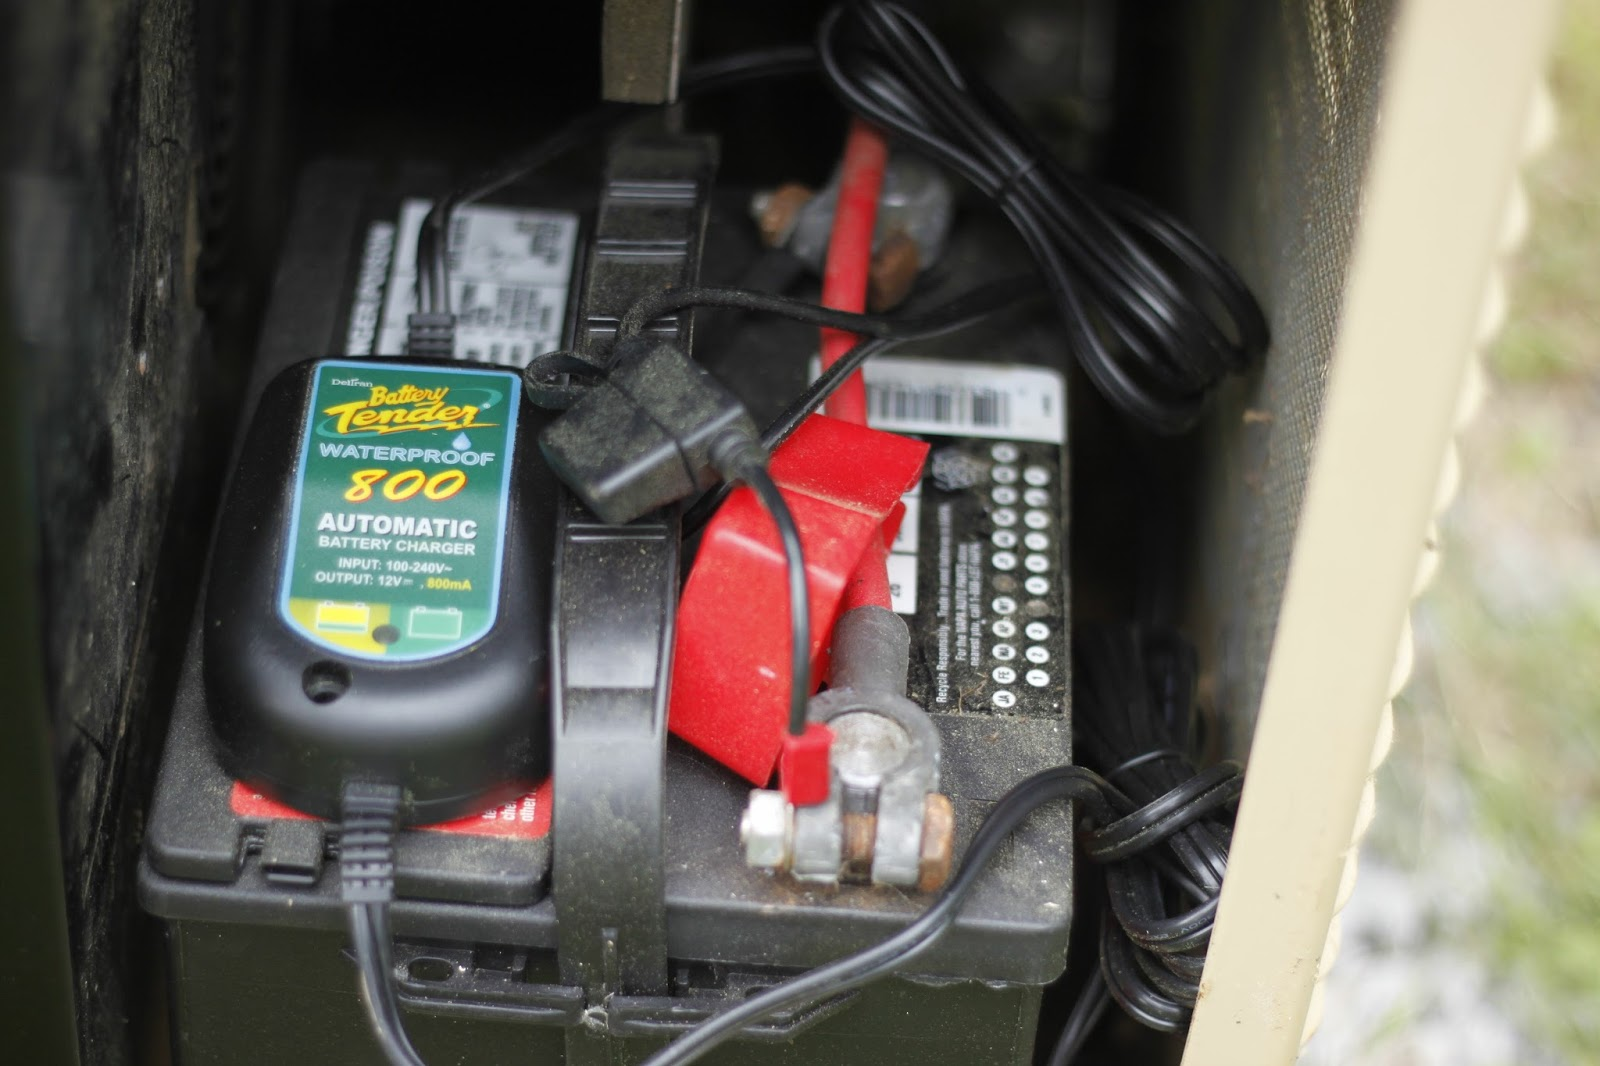 generac nexus switch wiring wiring diagram generac nexus smart switch fet tricks substitue battery charger for generac generator